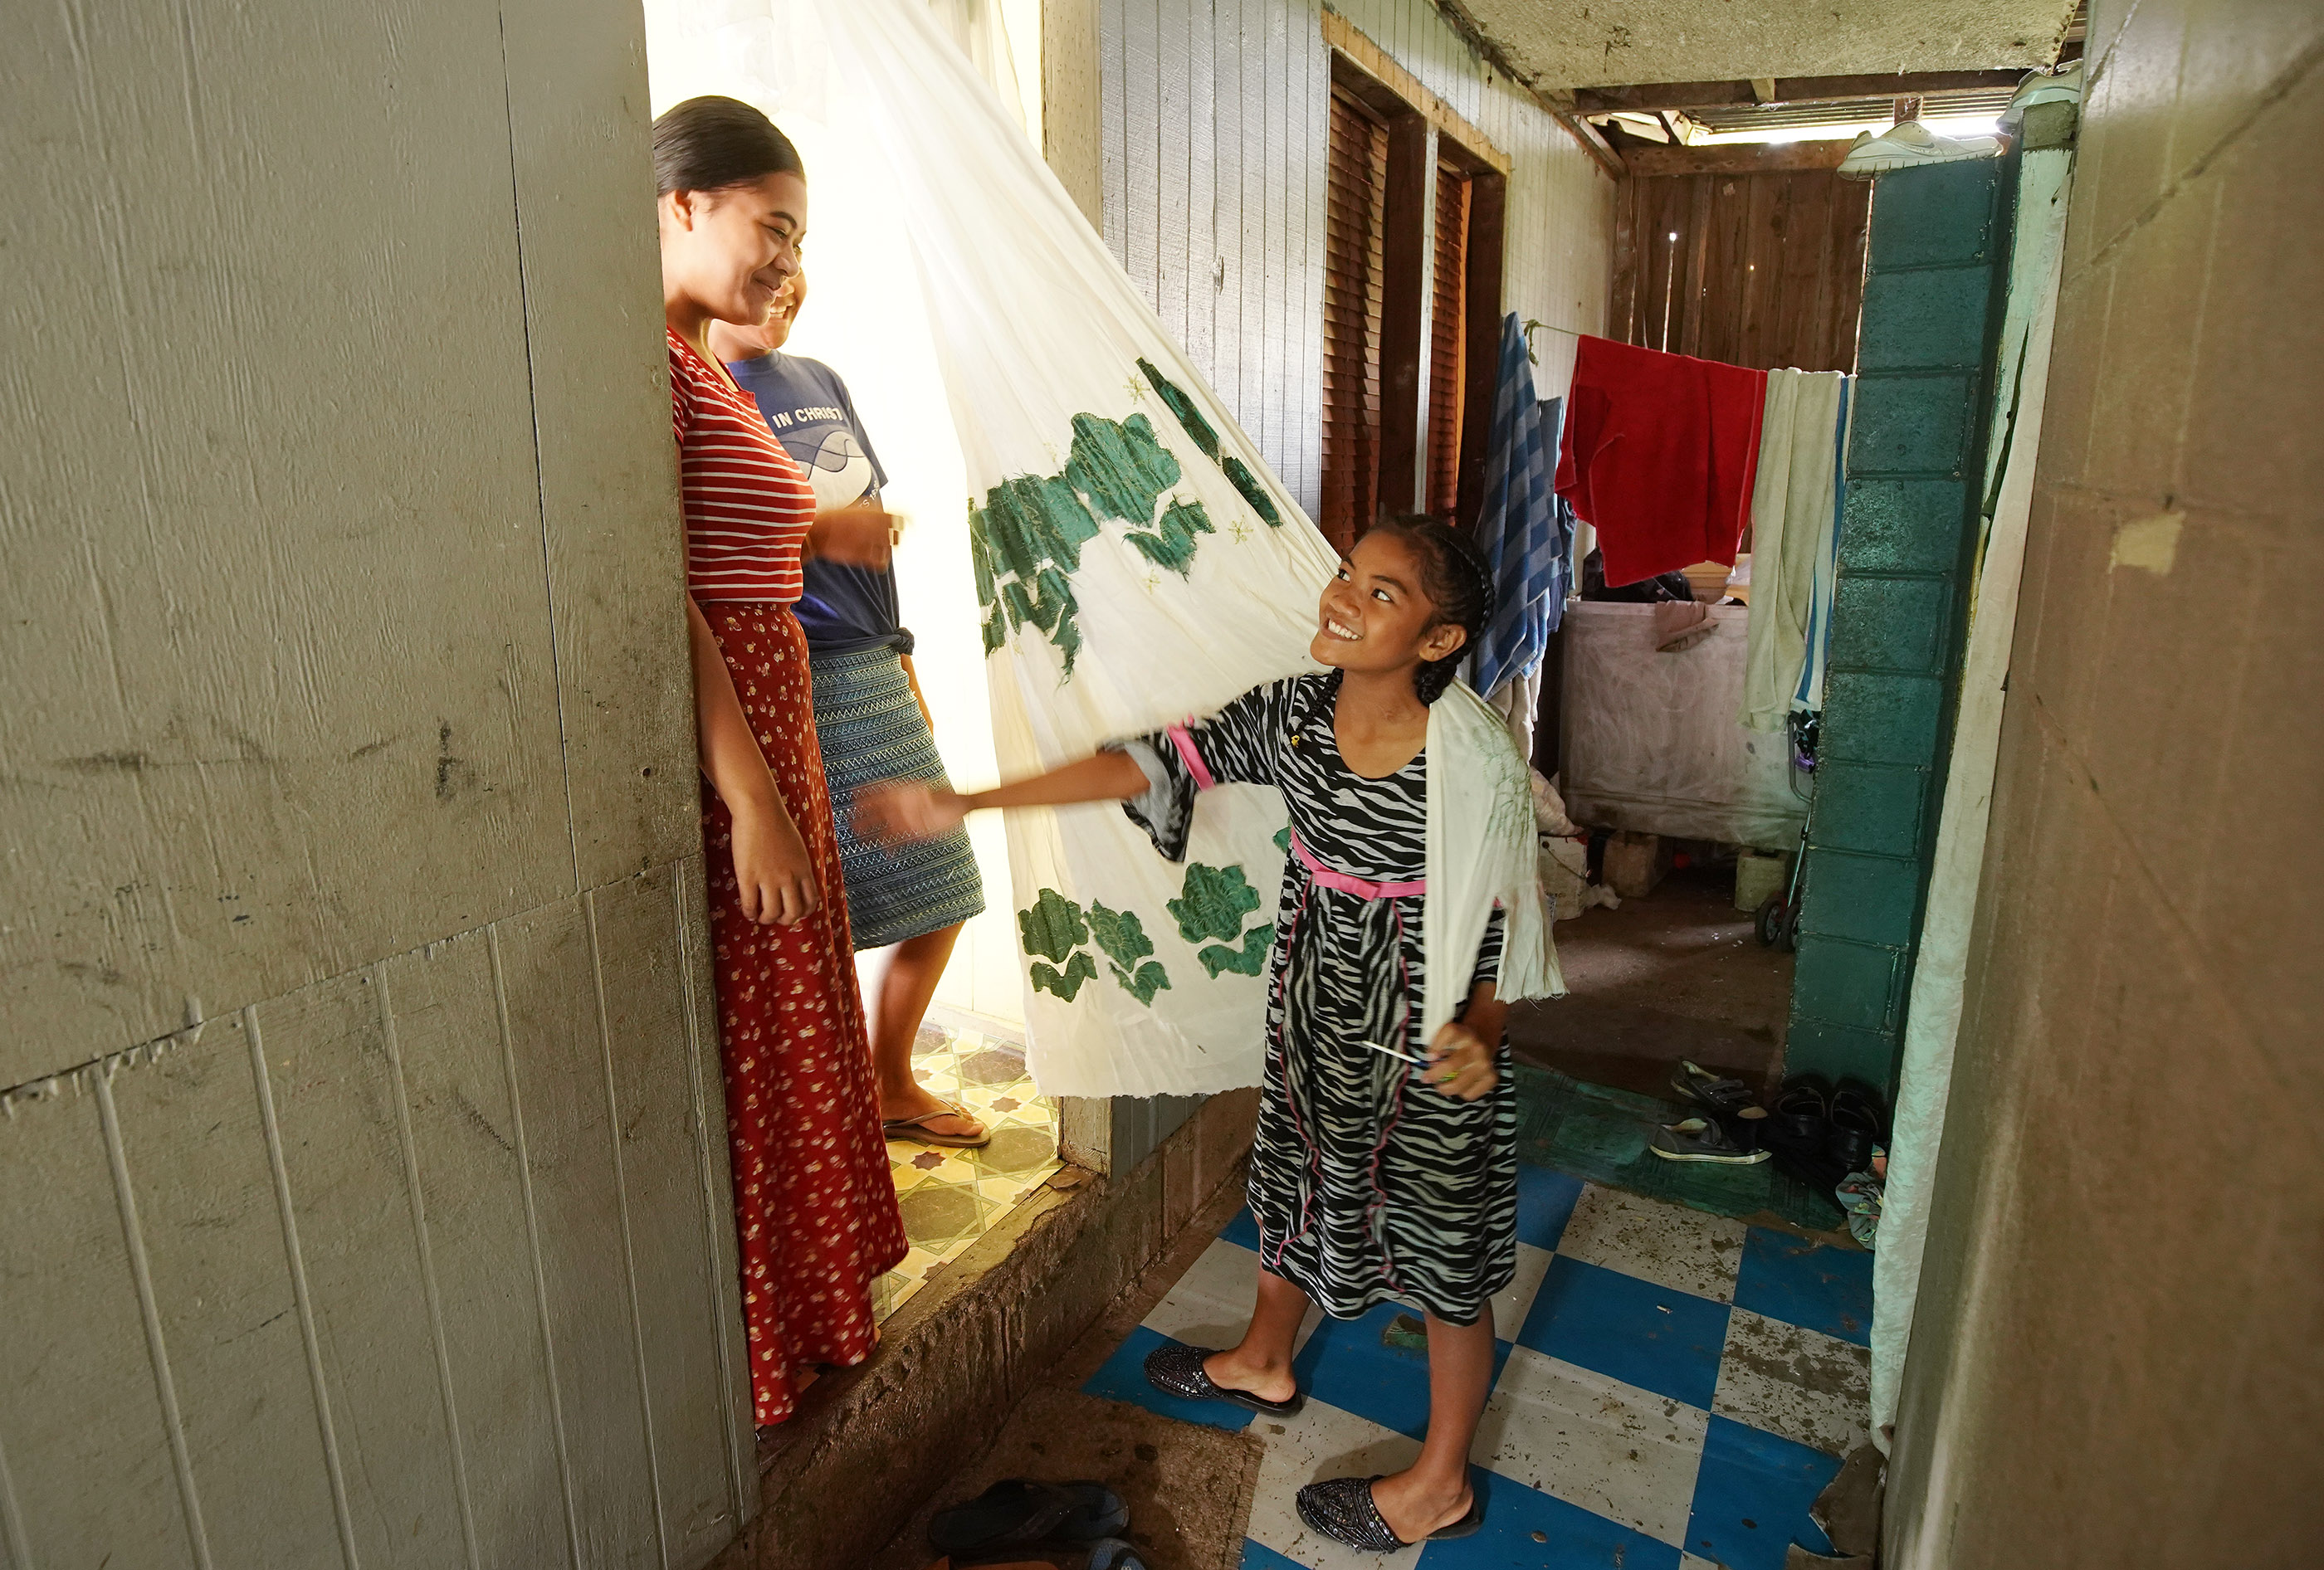 Falakika talks with her sisters Telesia and Uinise at their his home in Tonga on May 23, 2019. Their father is bishop of his ward and has 10 children and one grandchild.